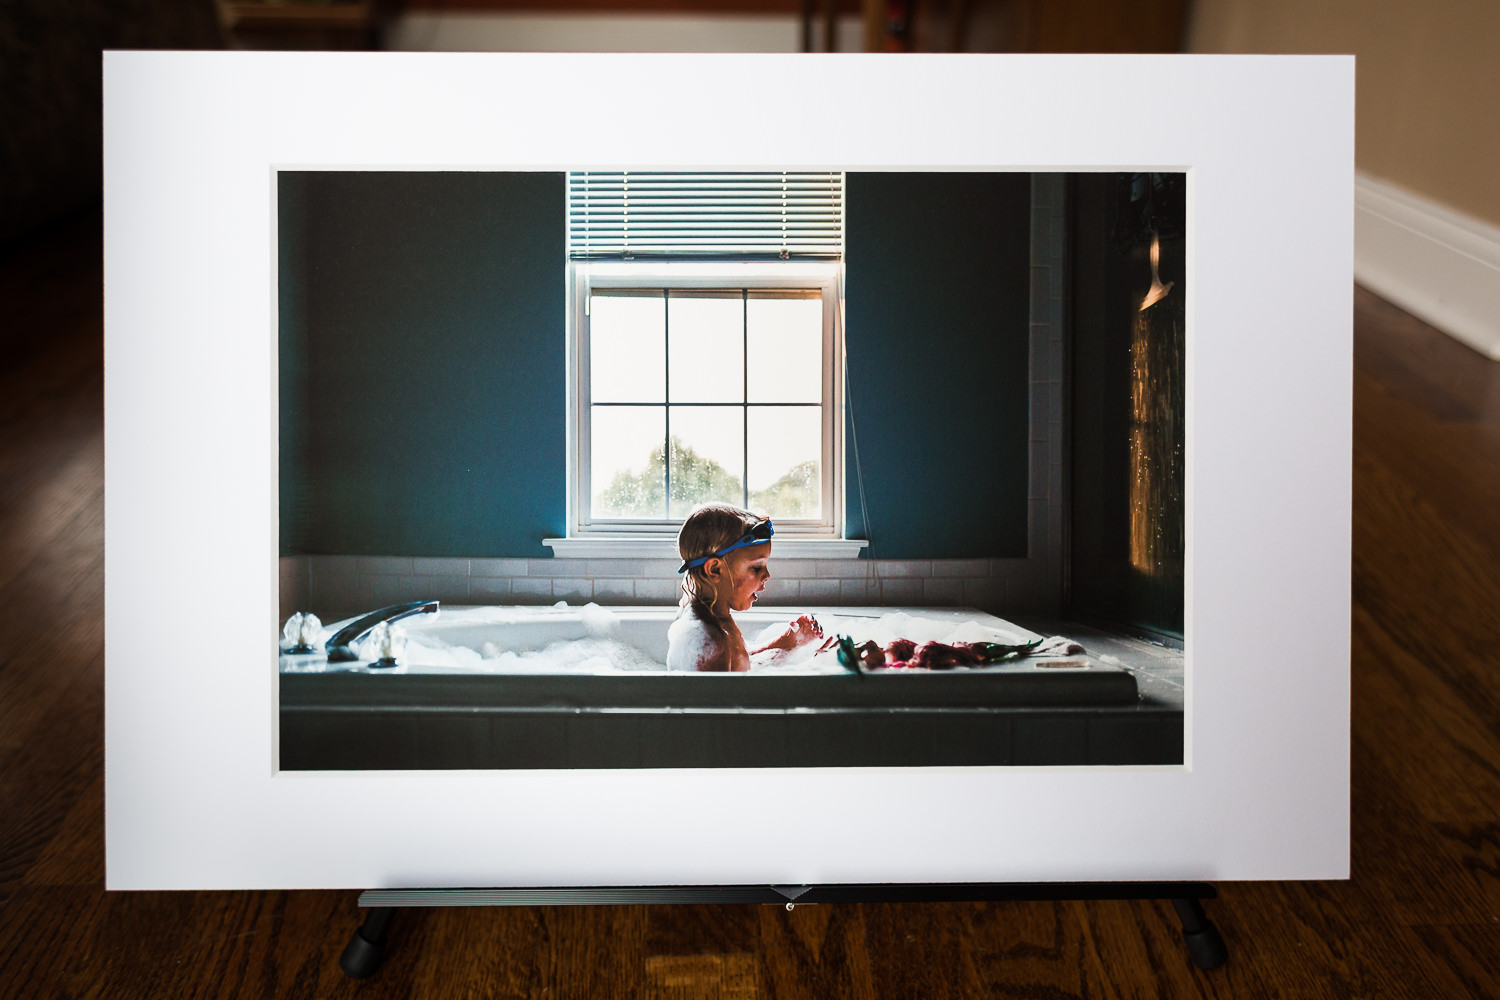 framed-print-child-bathtub-1.jpg